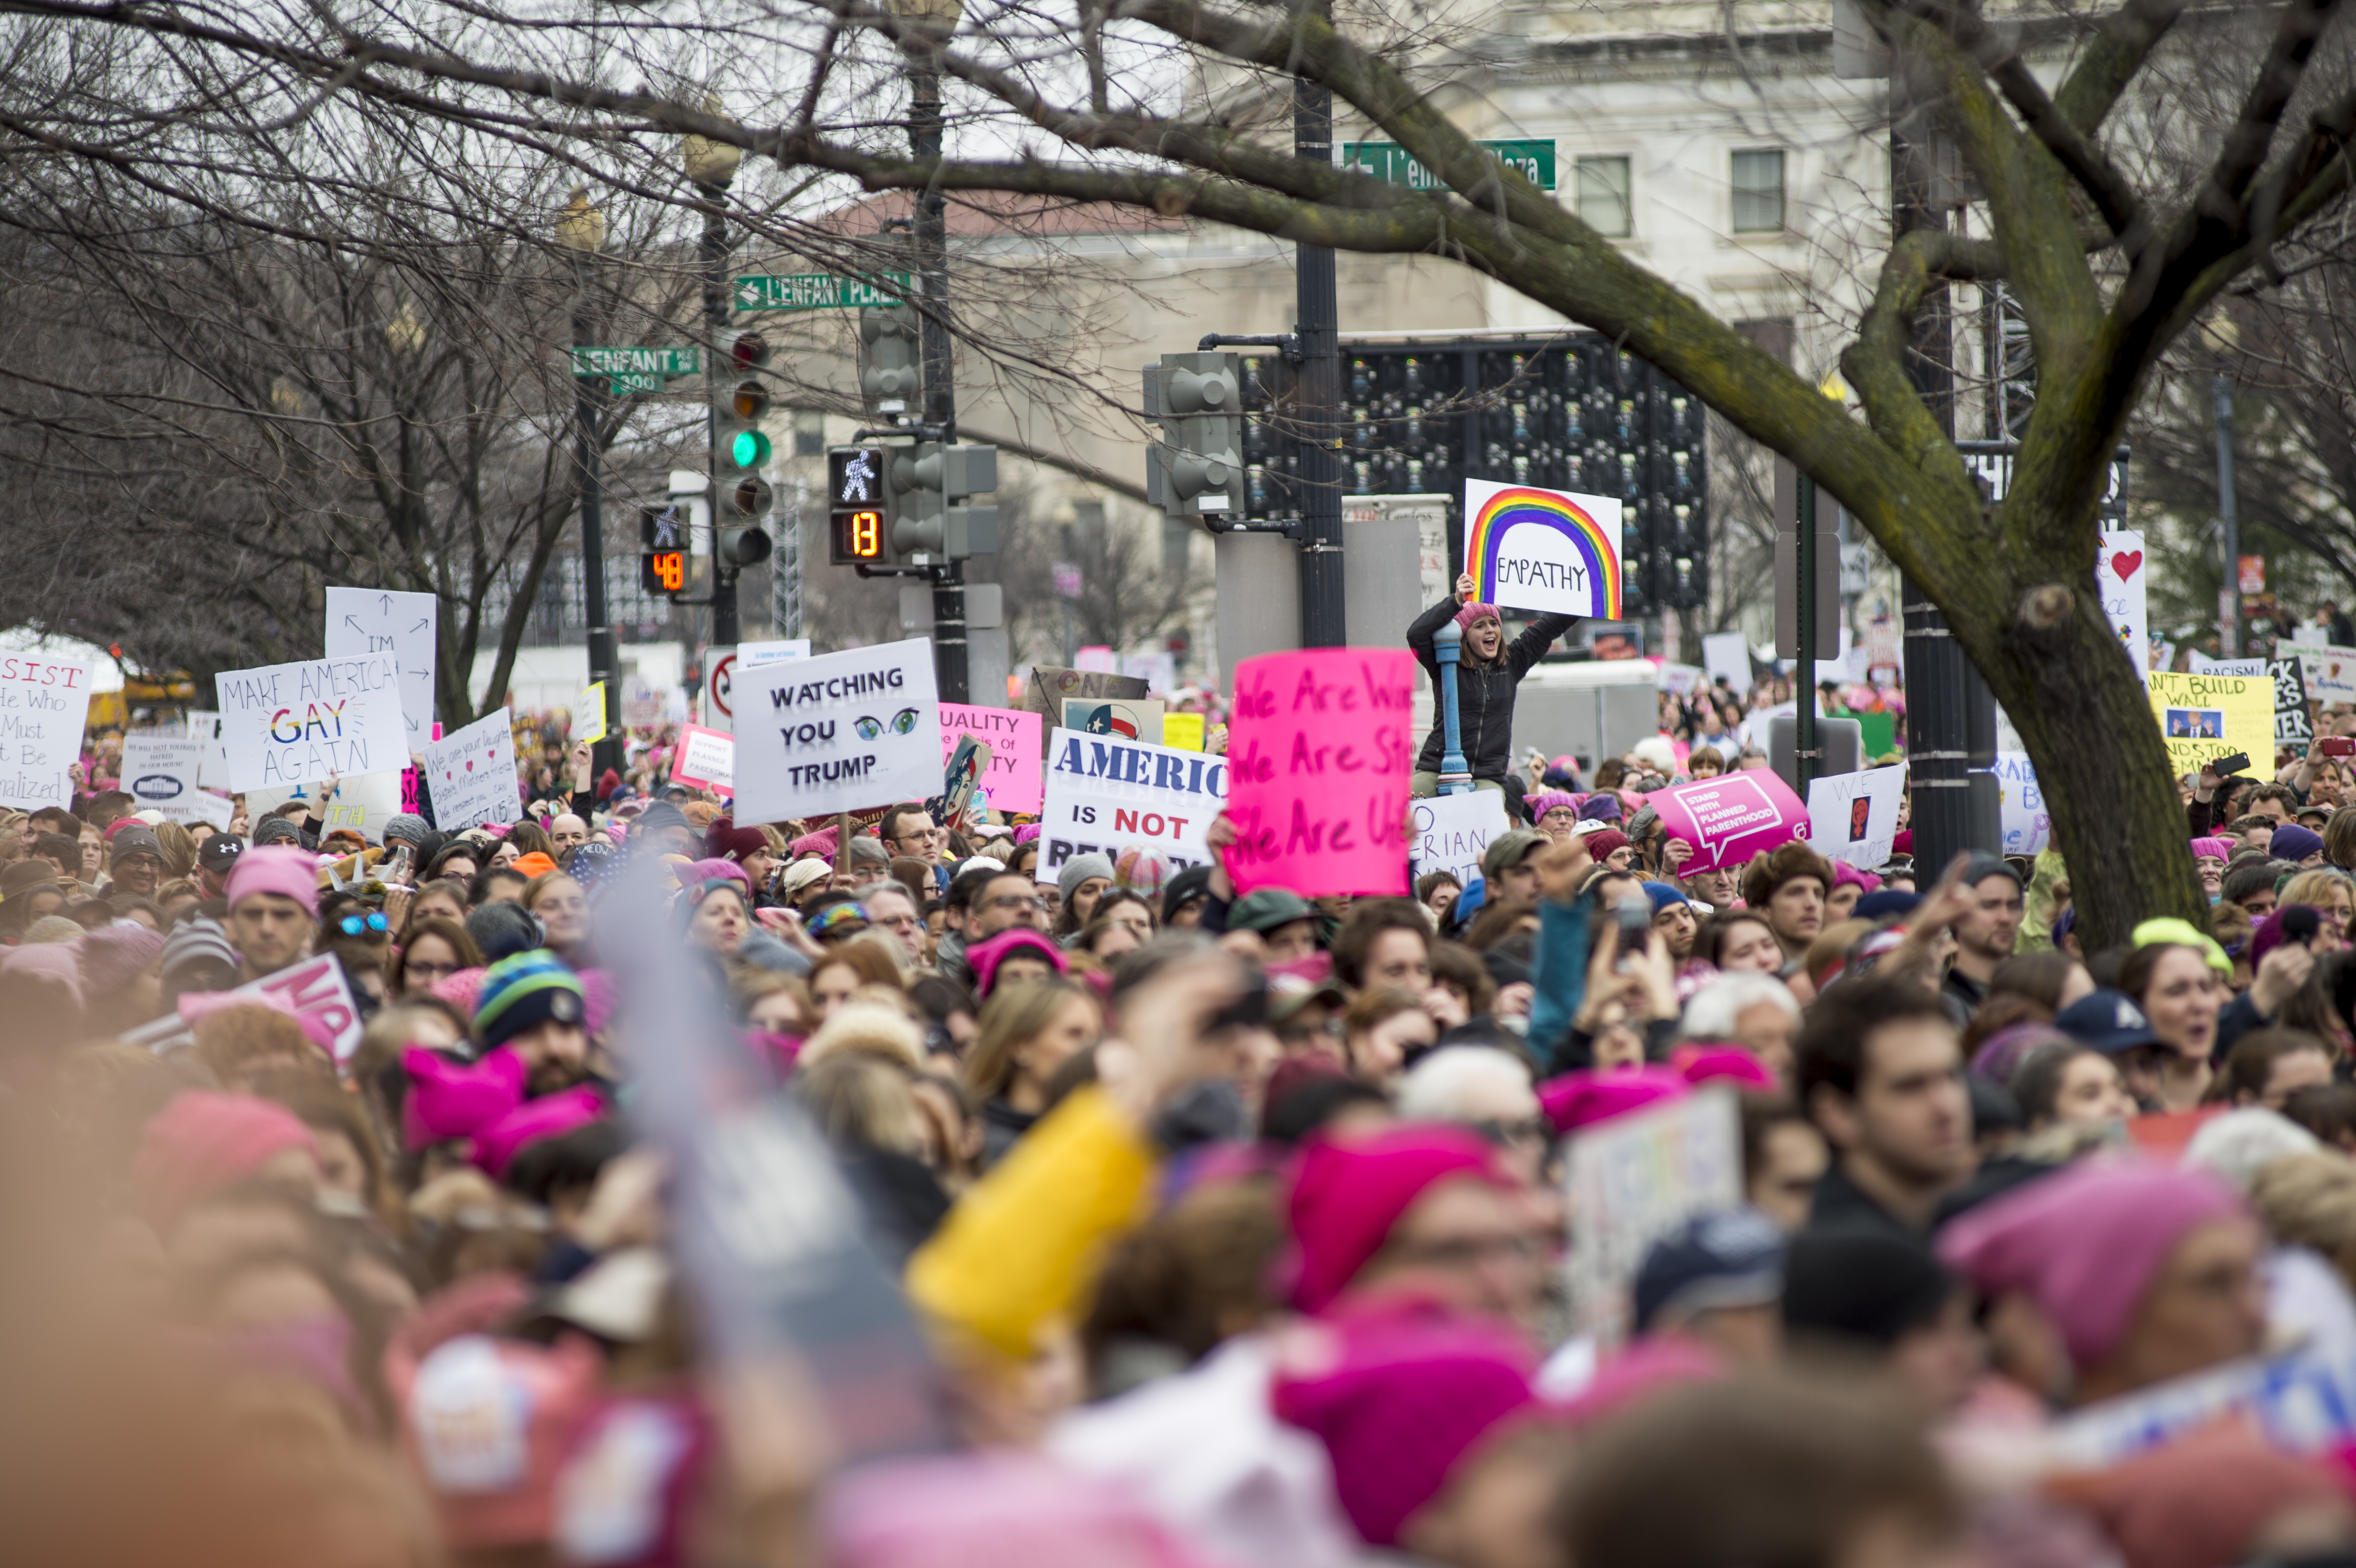 Crowds gather for the rally on Independence Ave next to the National Mall at the Women's March on Washington on Jan. 21, 2017 in Washington, DC.